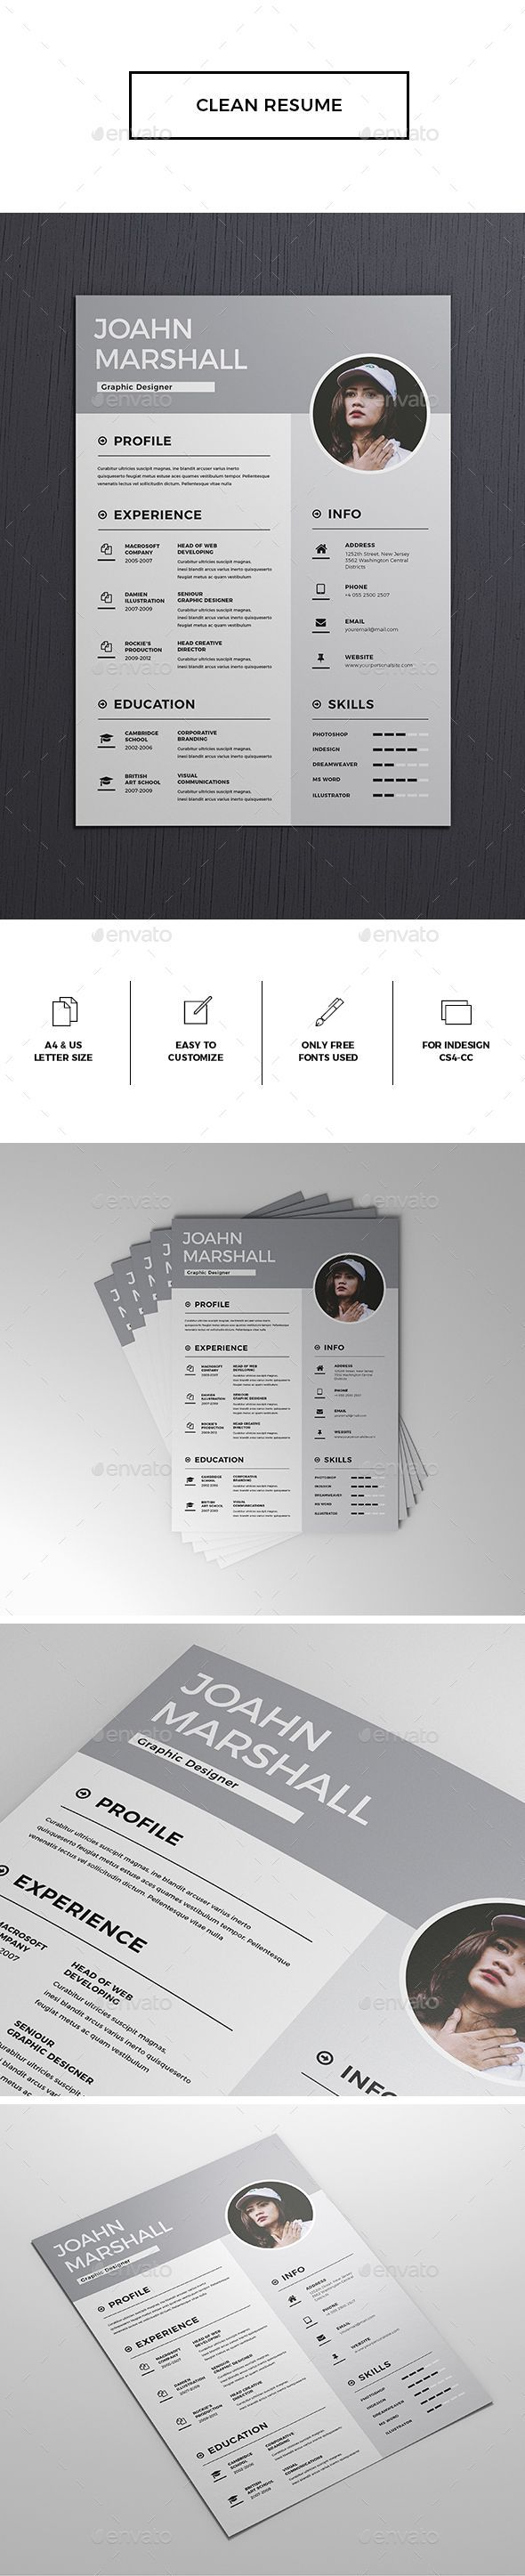 Clean Resume / CV Template InDesign INDD - A4 and US Letter Size ...